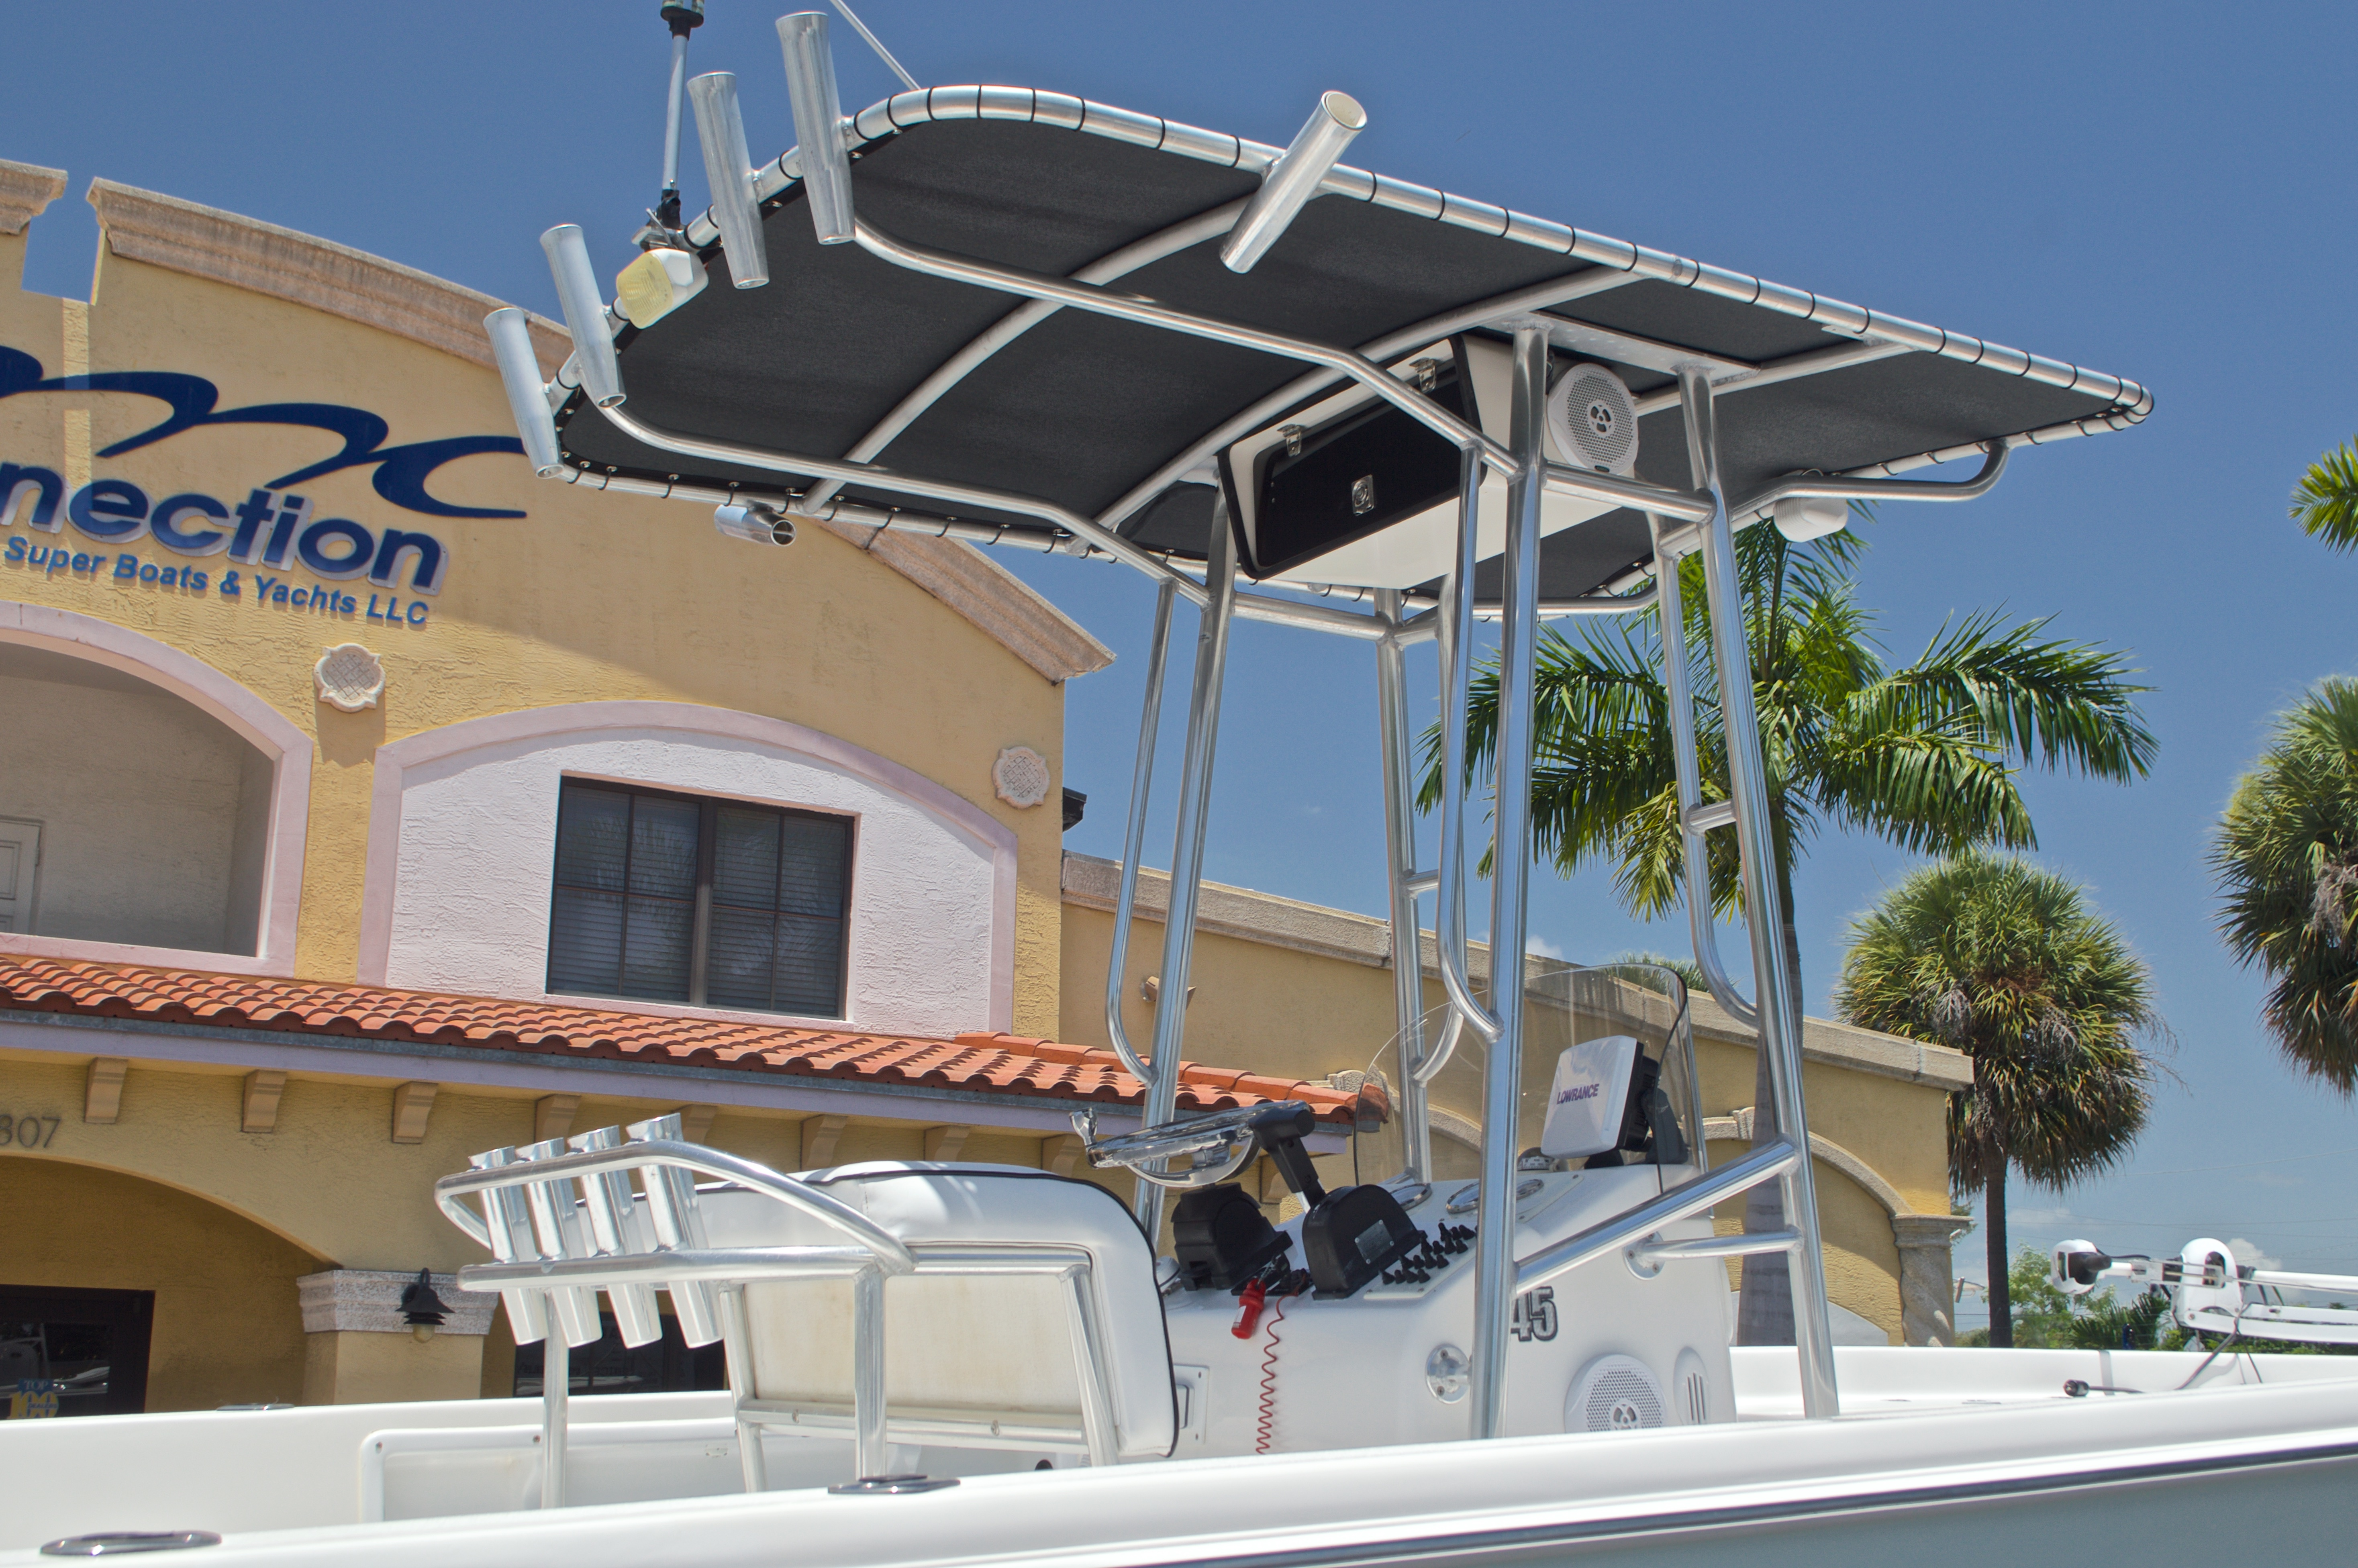 Thumbnail 14 for Used 2005 Sea Chaser 245 Bay Runner LX boat for sale in West Palm Beach, FL